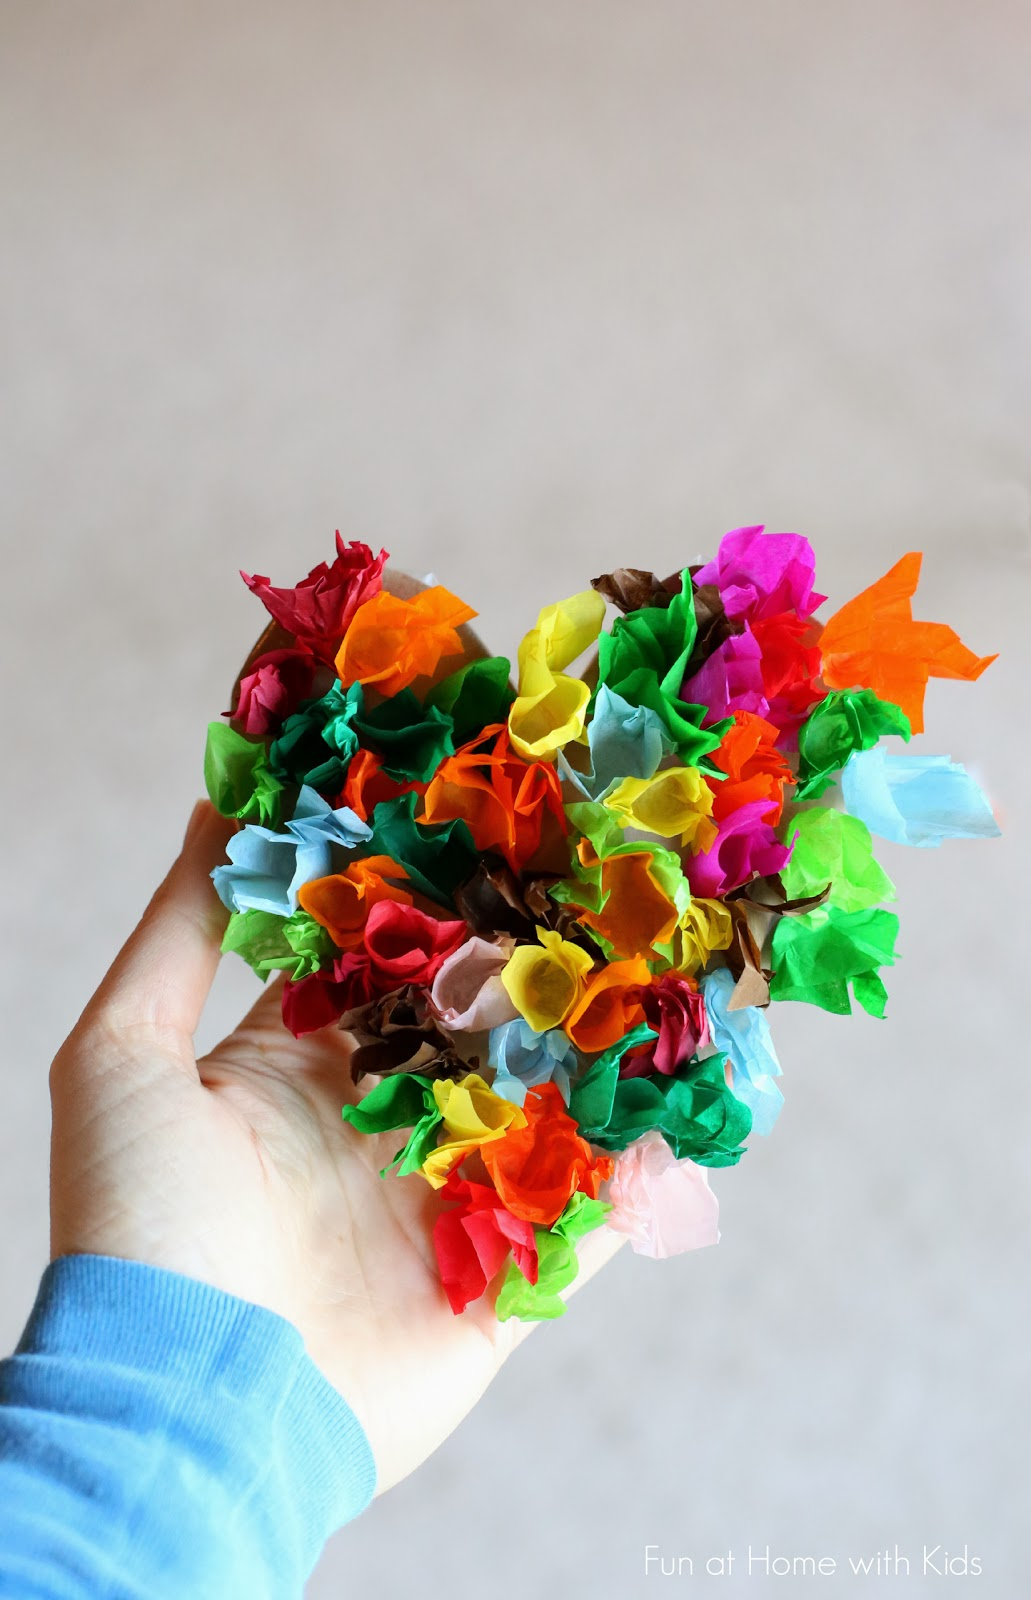 Tissue Paper Craft Ideas For Kids Part - 25: An Easy And Simple Tissue Paper Heart Craft For Toddlers And Preschoolers  From Fun At Home